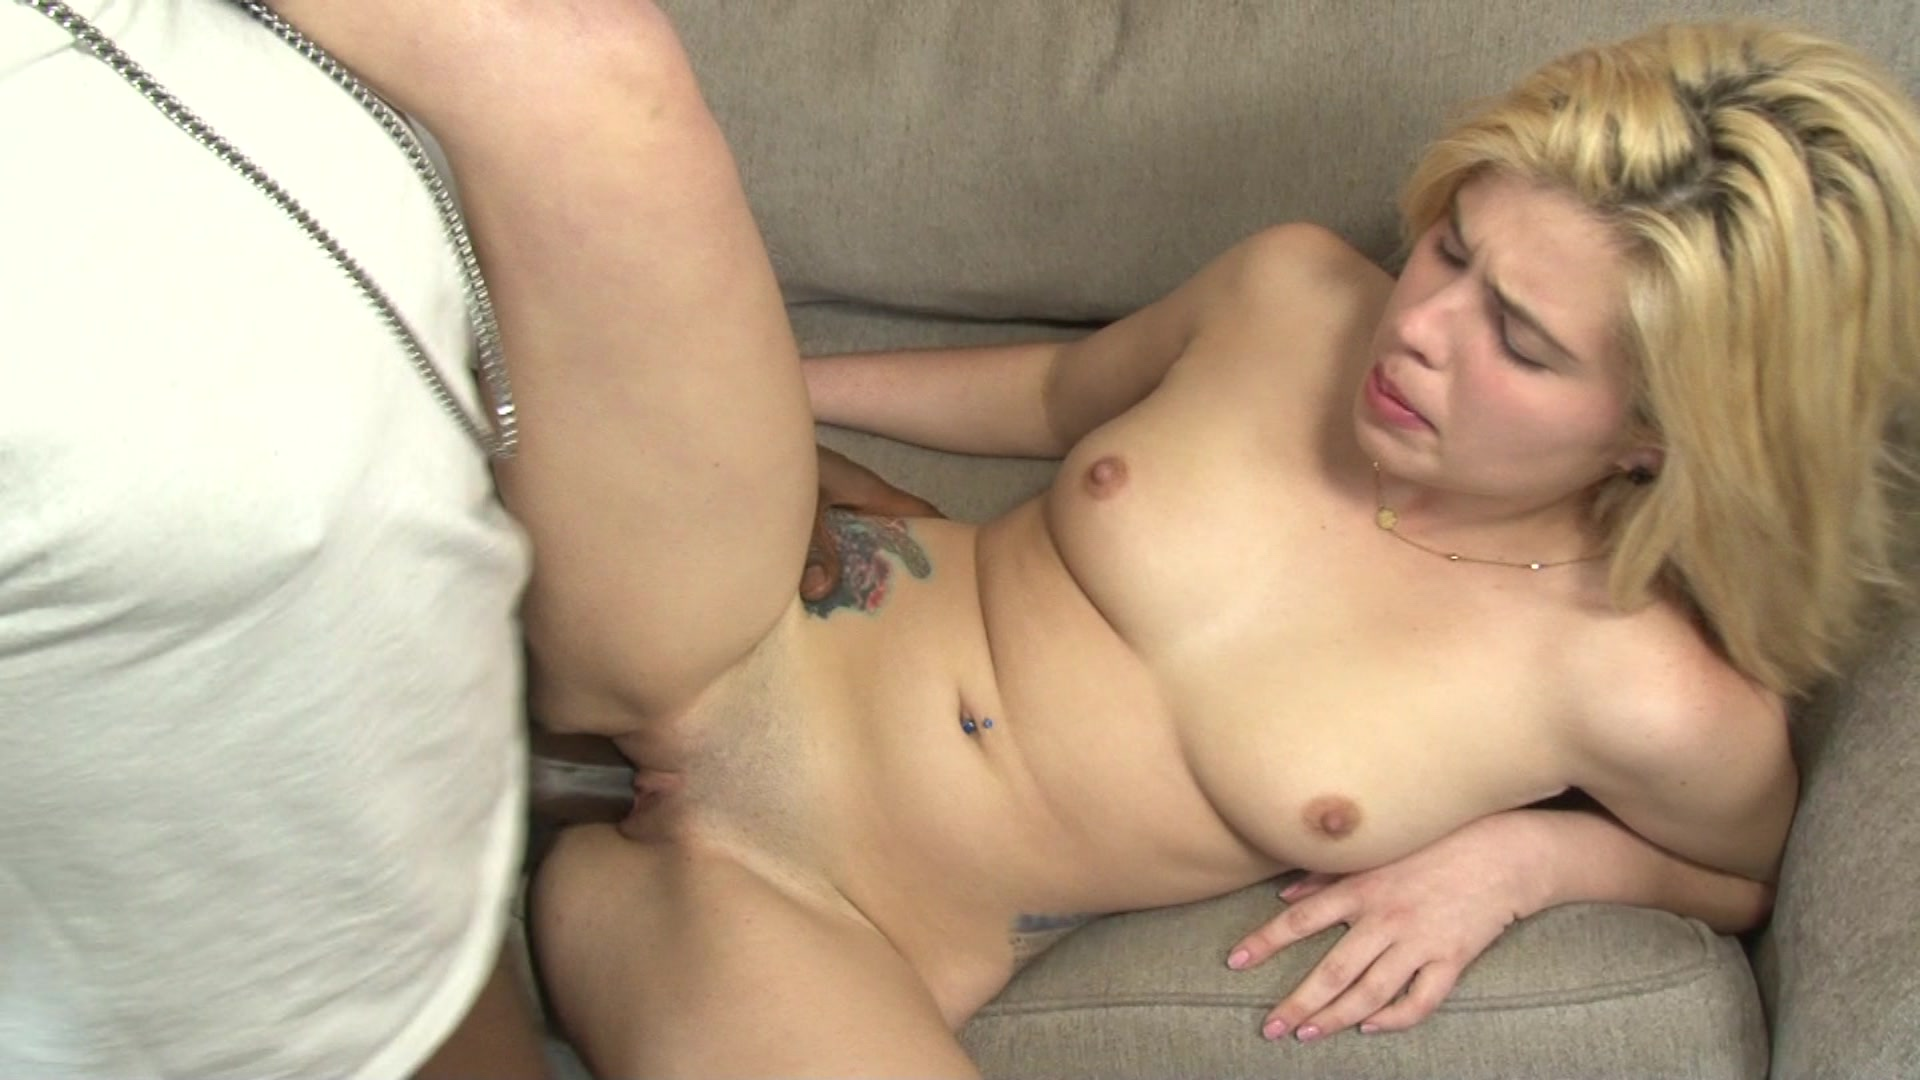 Blonde Cutie Fucks and Older Black Stud on the Gray Couch